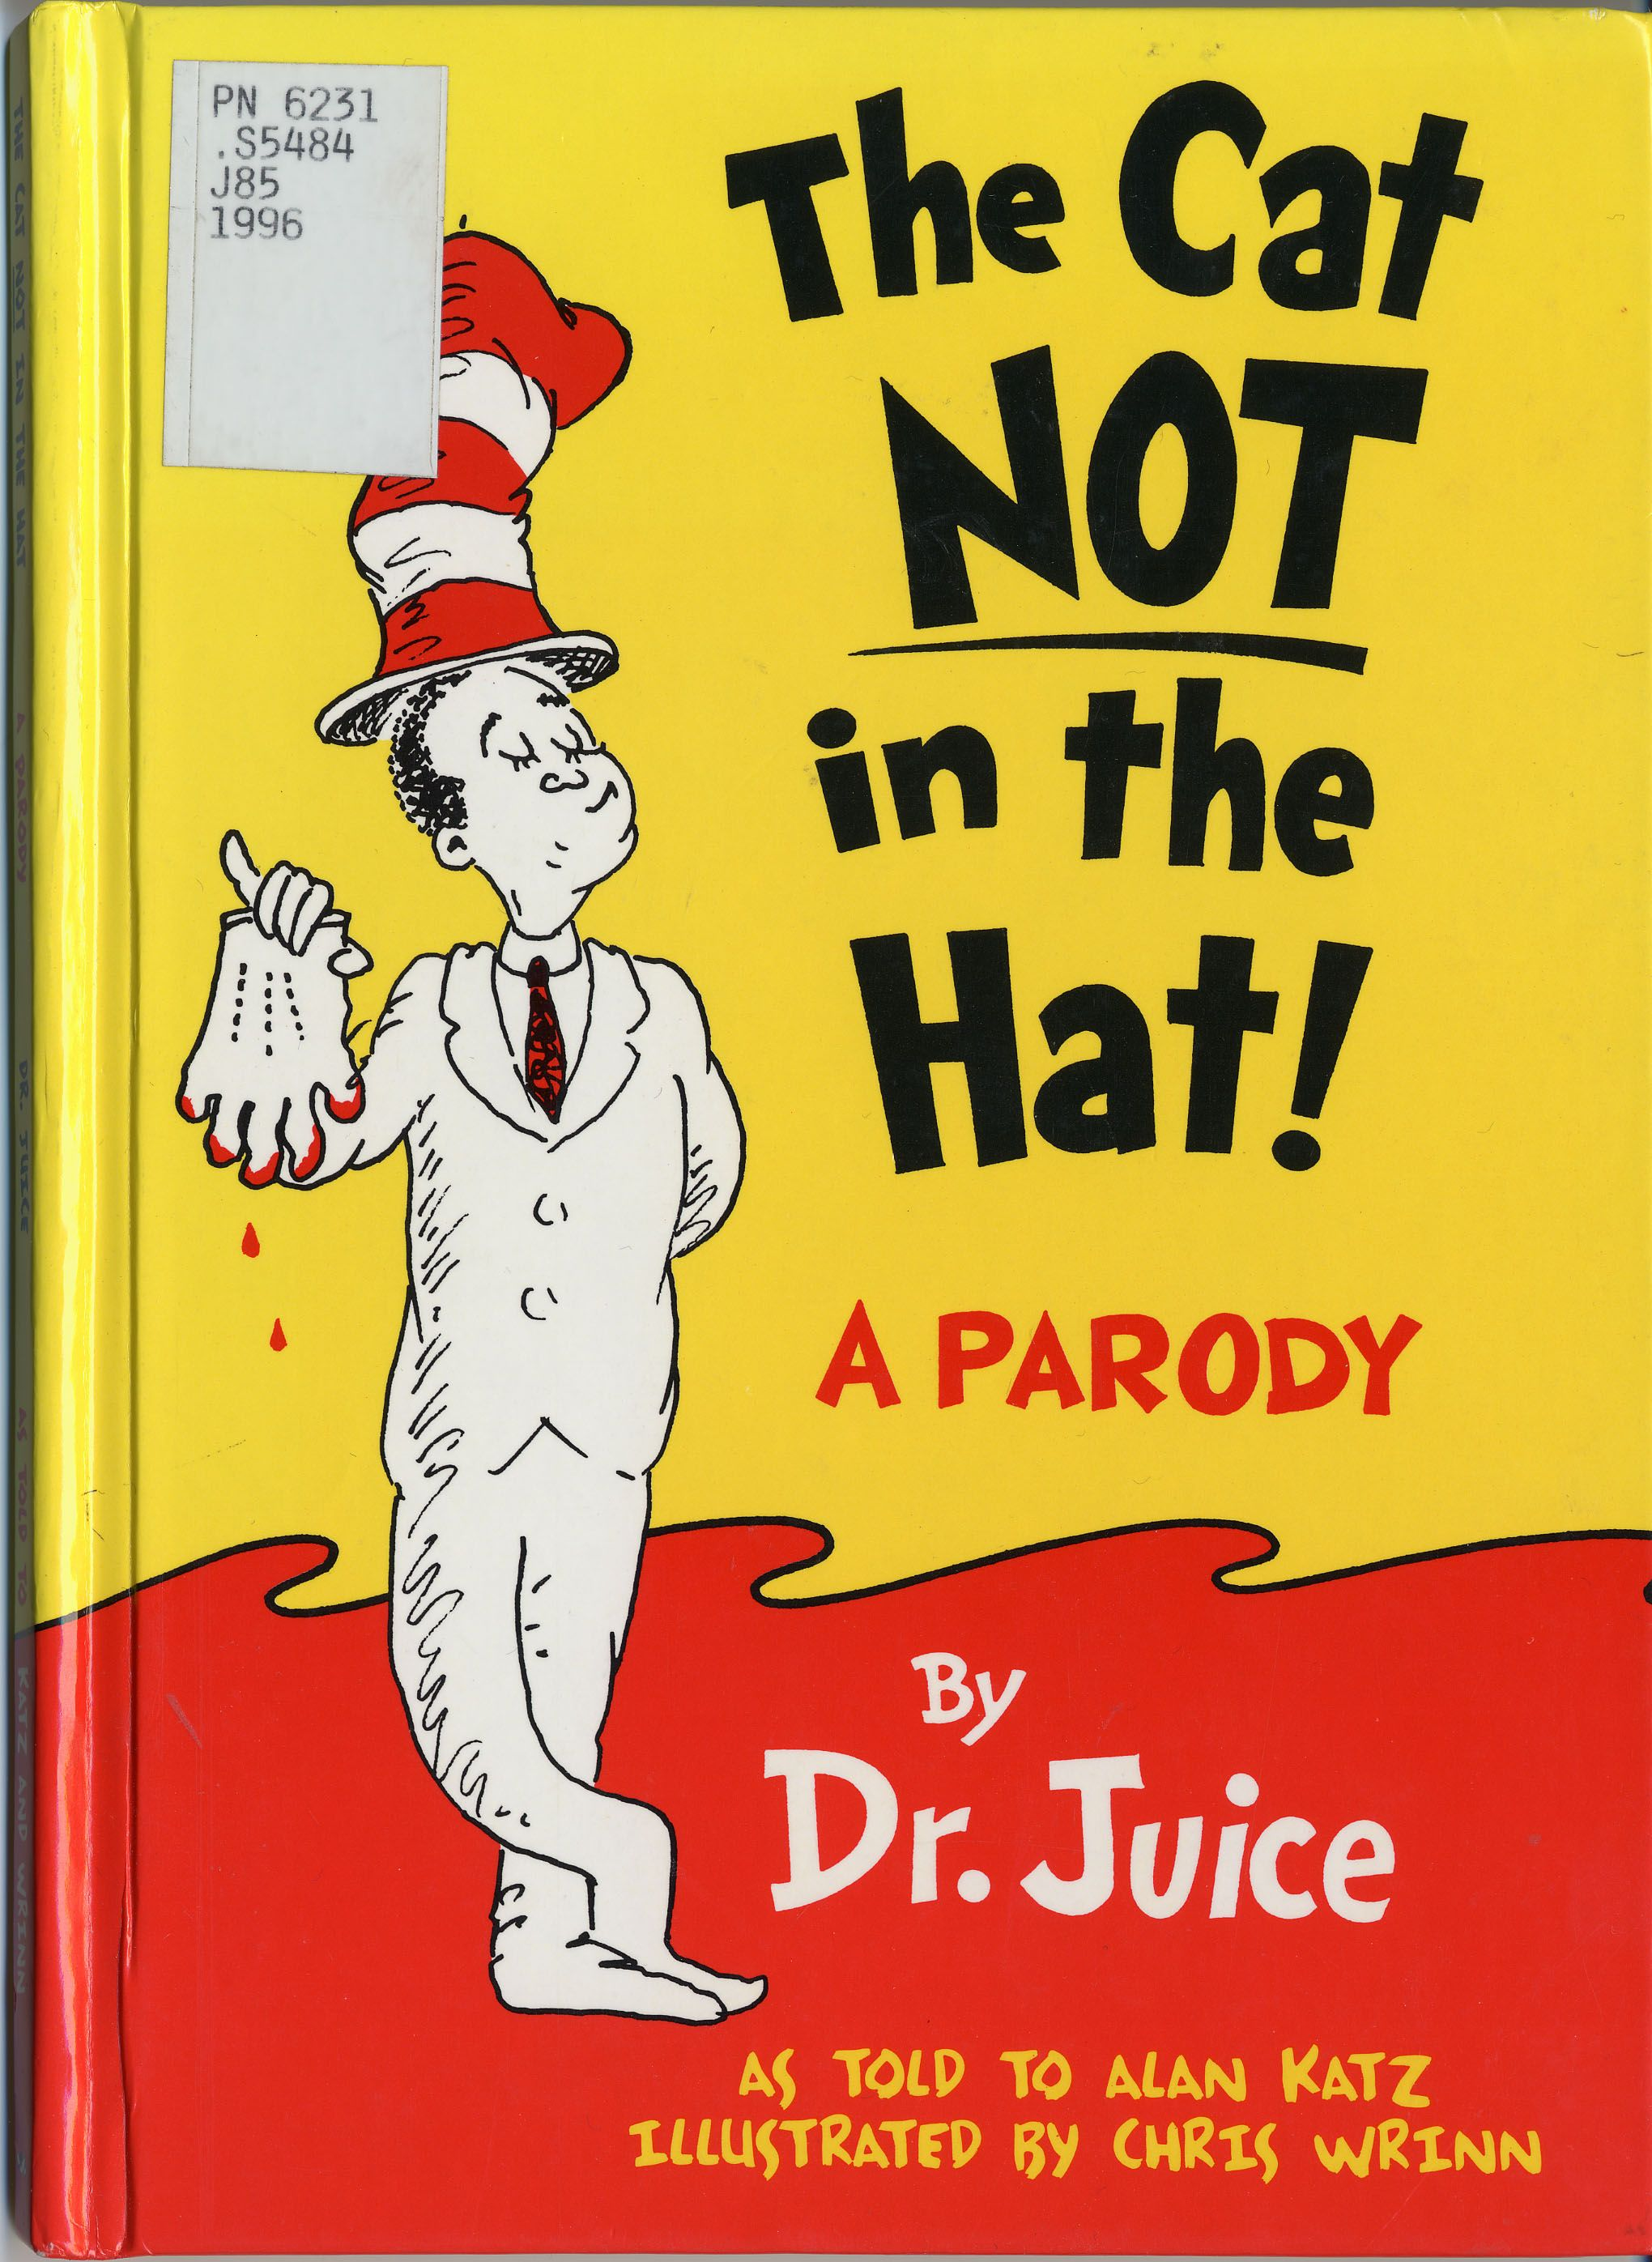 The Cat NOT in the Hat! can be found only in the Library